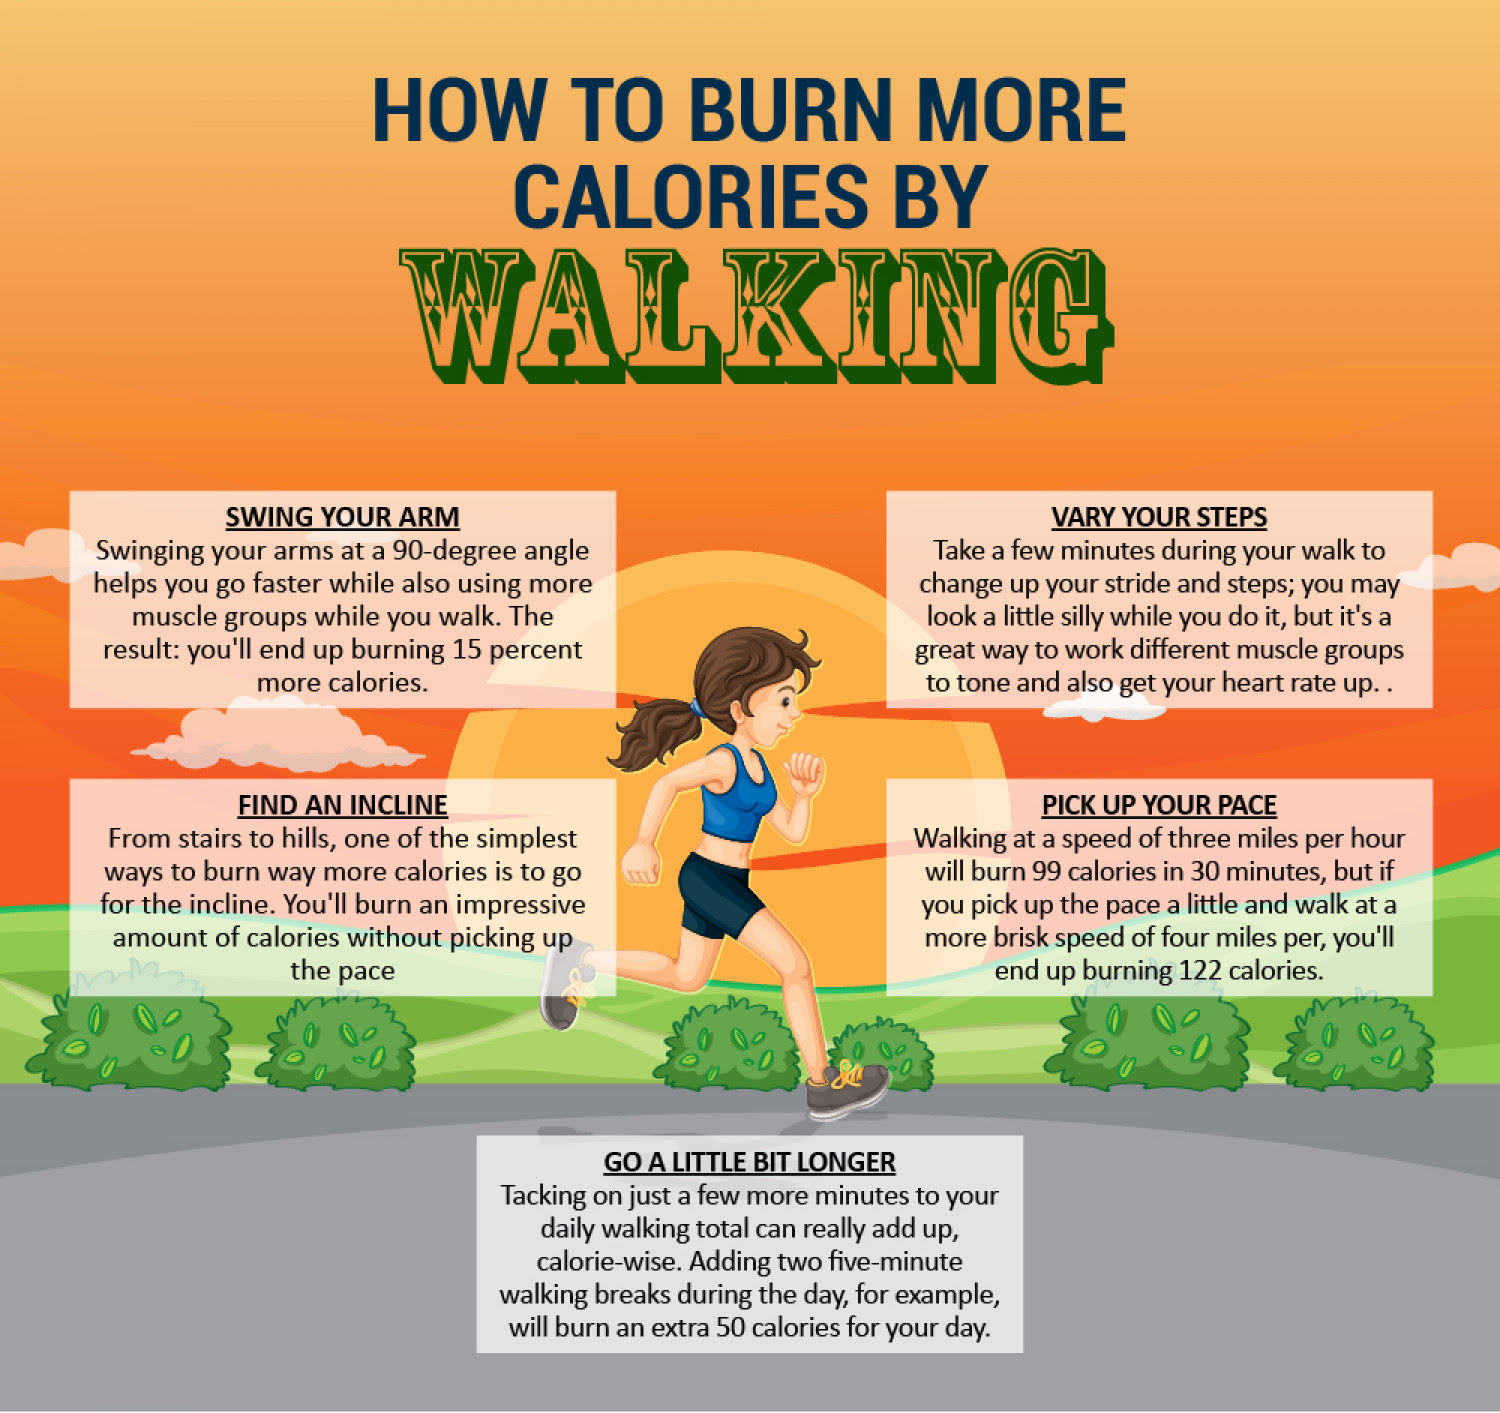 5 Ways To Burn Calories Faster | Visual.ly